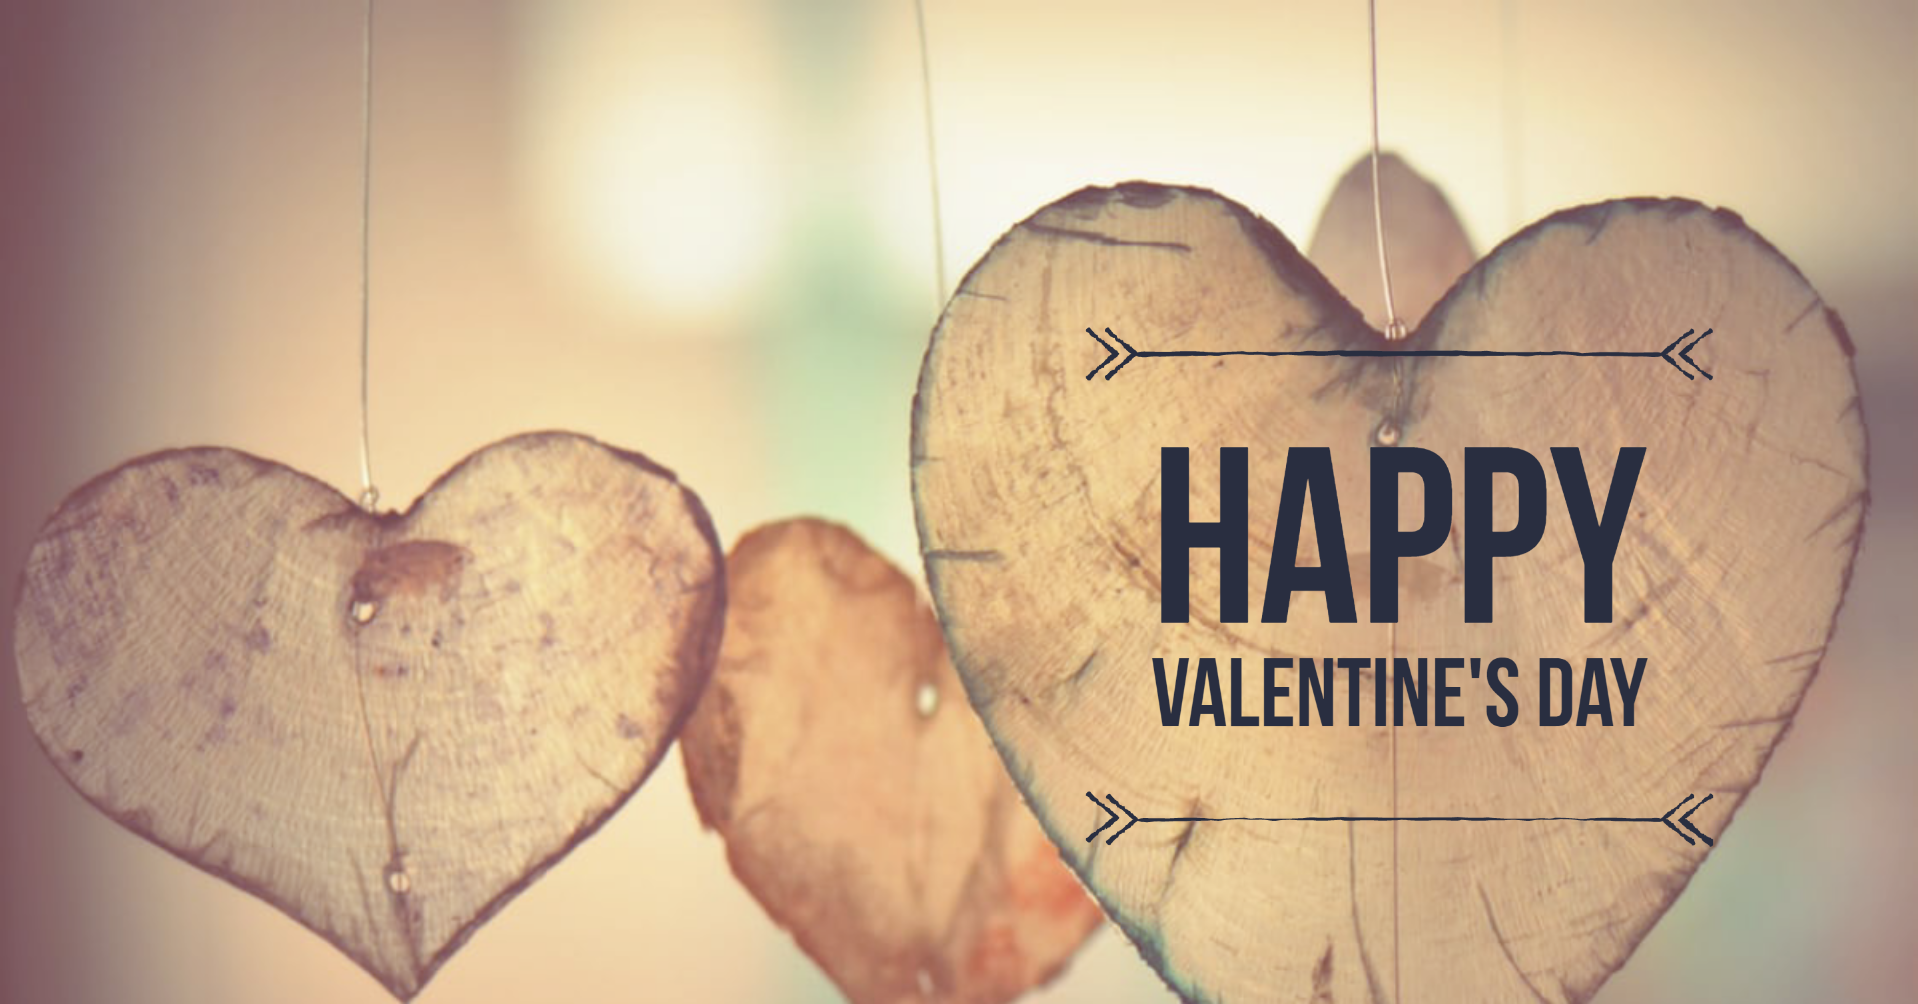 Happy Valentine S Day From Everyone At Bob S Heating We Hope Your